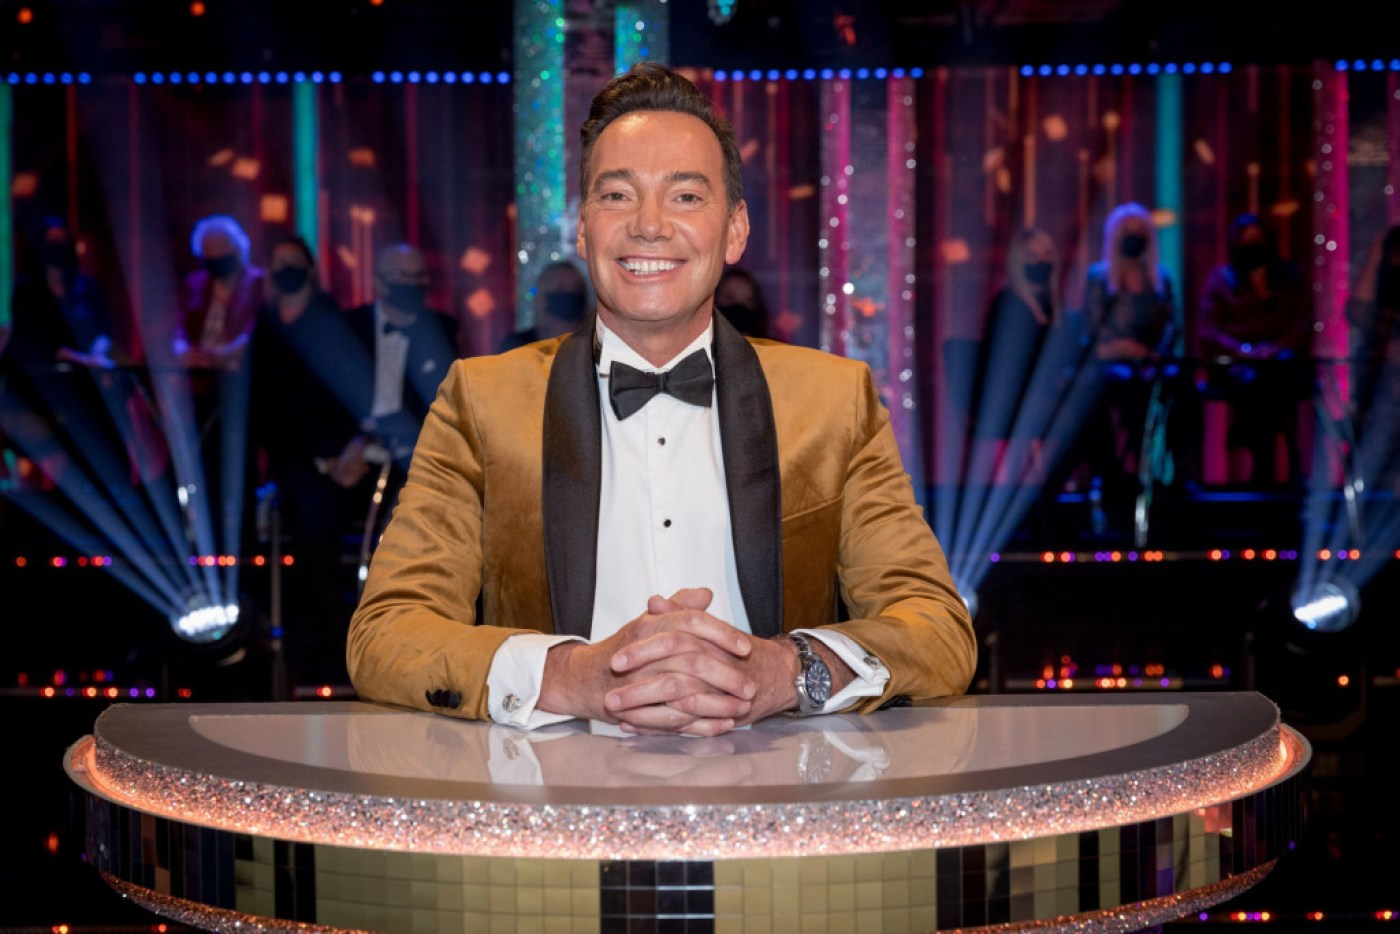 EMBARGOED TO 0001 SATURDAY OCTOBER 17 For use in UK, Ireland or Benelux countries only Undated BBC handout photo of the judge Craig Revel Horwood during the launch show for this year's BBC1's dancing contest, Strictly Come Dancing. PA Photo. Issue date: Saturday October 17, 2020. See PA story SHOWBIZ Strictly. Photo credit should read: Guy Levy/BBC/PA Wire NOTE TO EDITORS: Not for use more than 21 days after issue. You may use this picture without charge only for the purpose of publicising or reporting on current BBC programming, personnel or other BBC output or activity within 21 days of issue. Any use after that time MUST be cleared through BBC Picture Publicity. Please credit the image to the BBC and any named photographer or independent programme maker, as described in the caption.